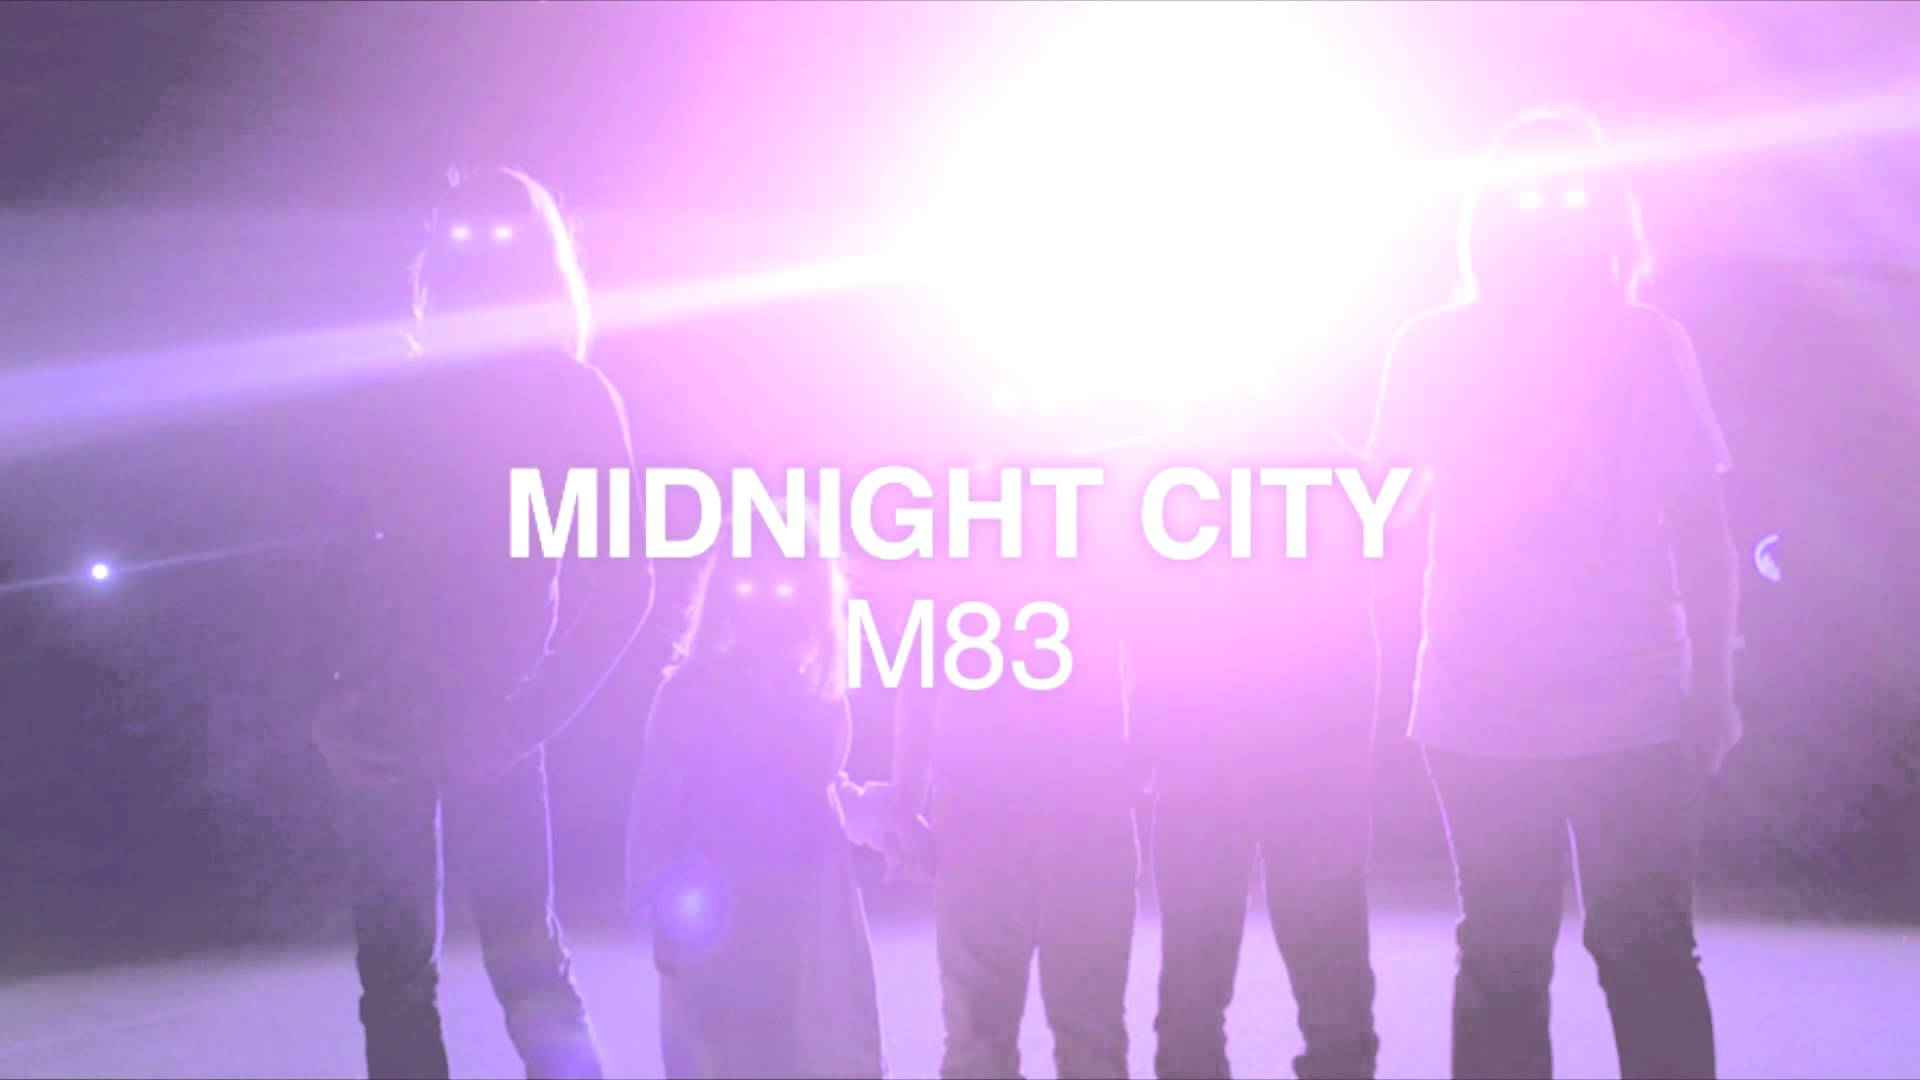 M83 – Midnight City